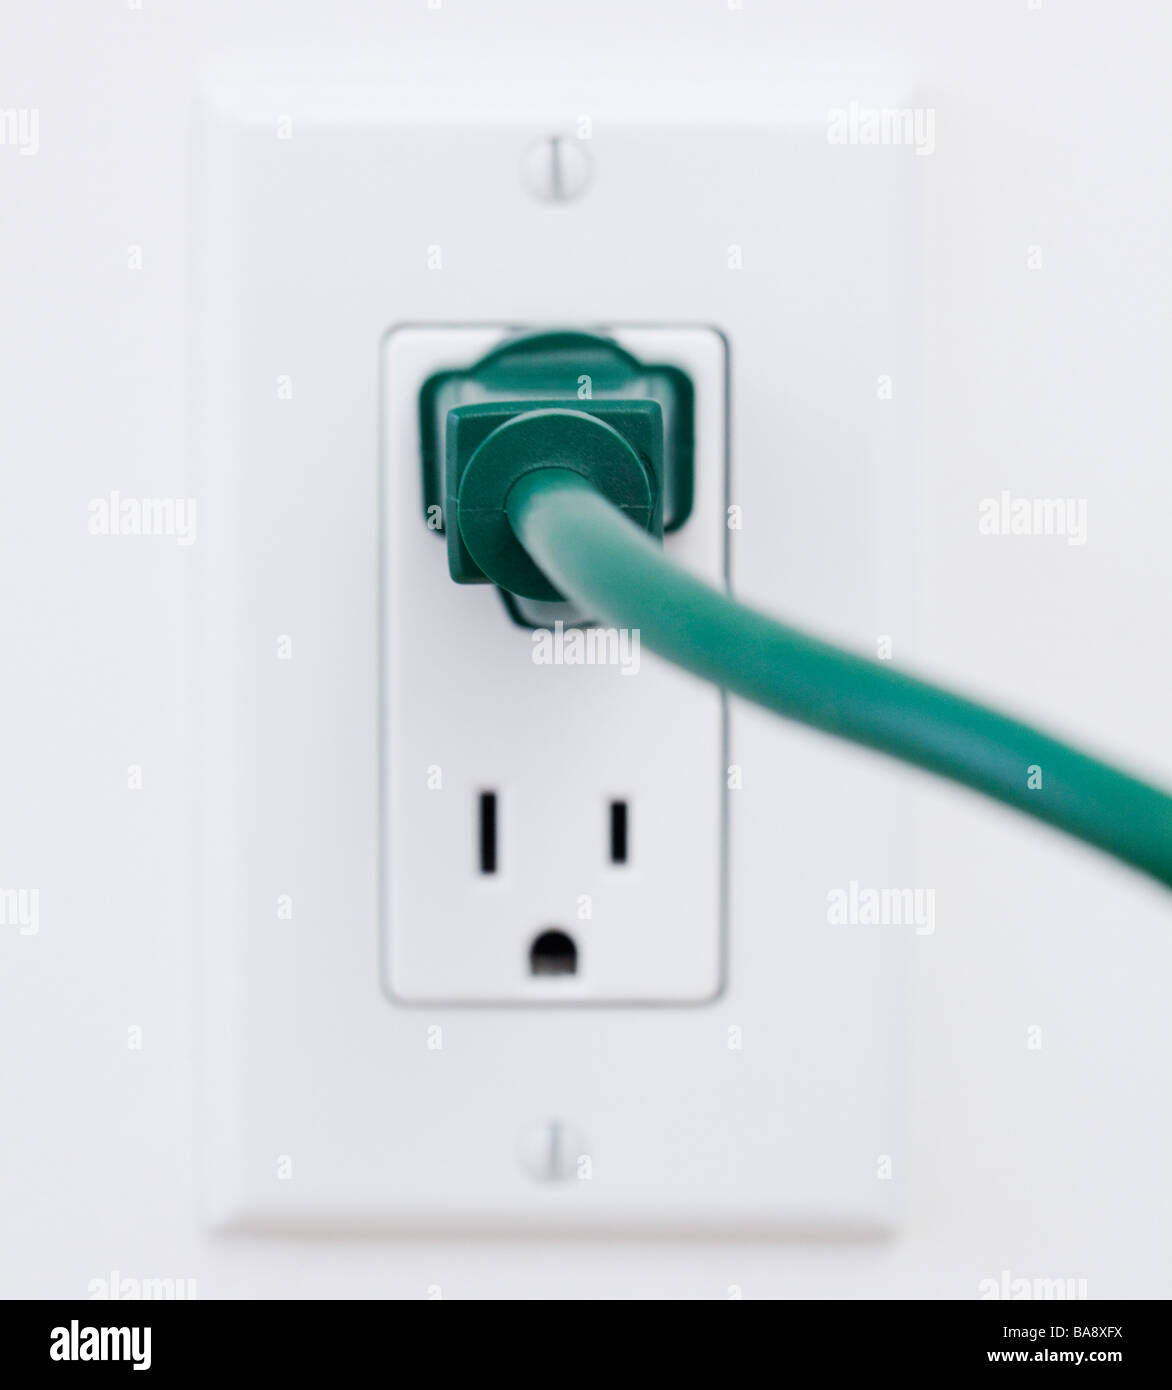 Hold Up By Wiring Stock Photos Images Alamy Wall Sockets Close Of Electric Plug And Outlet Image